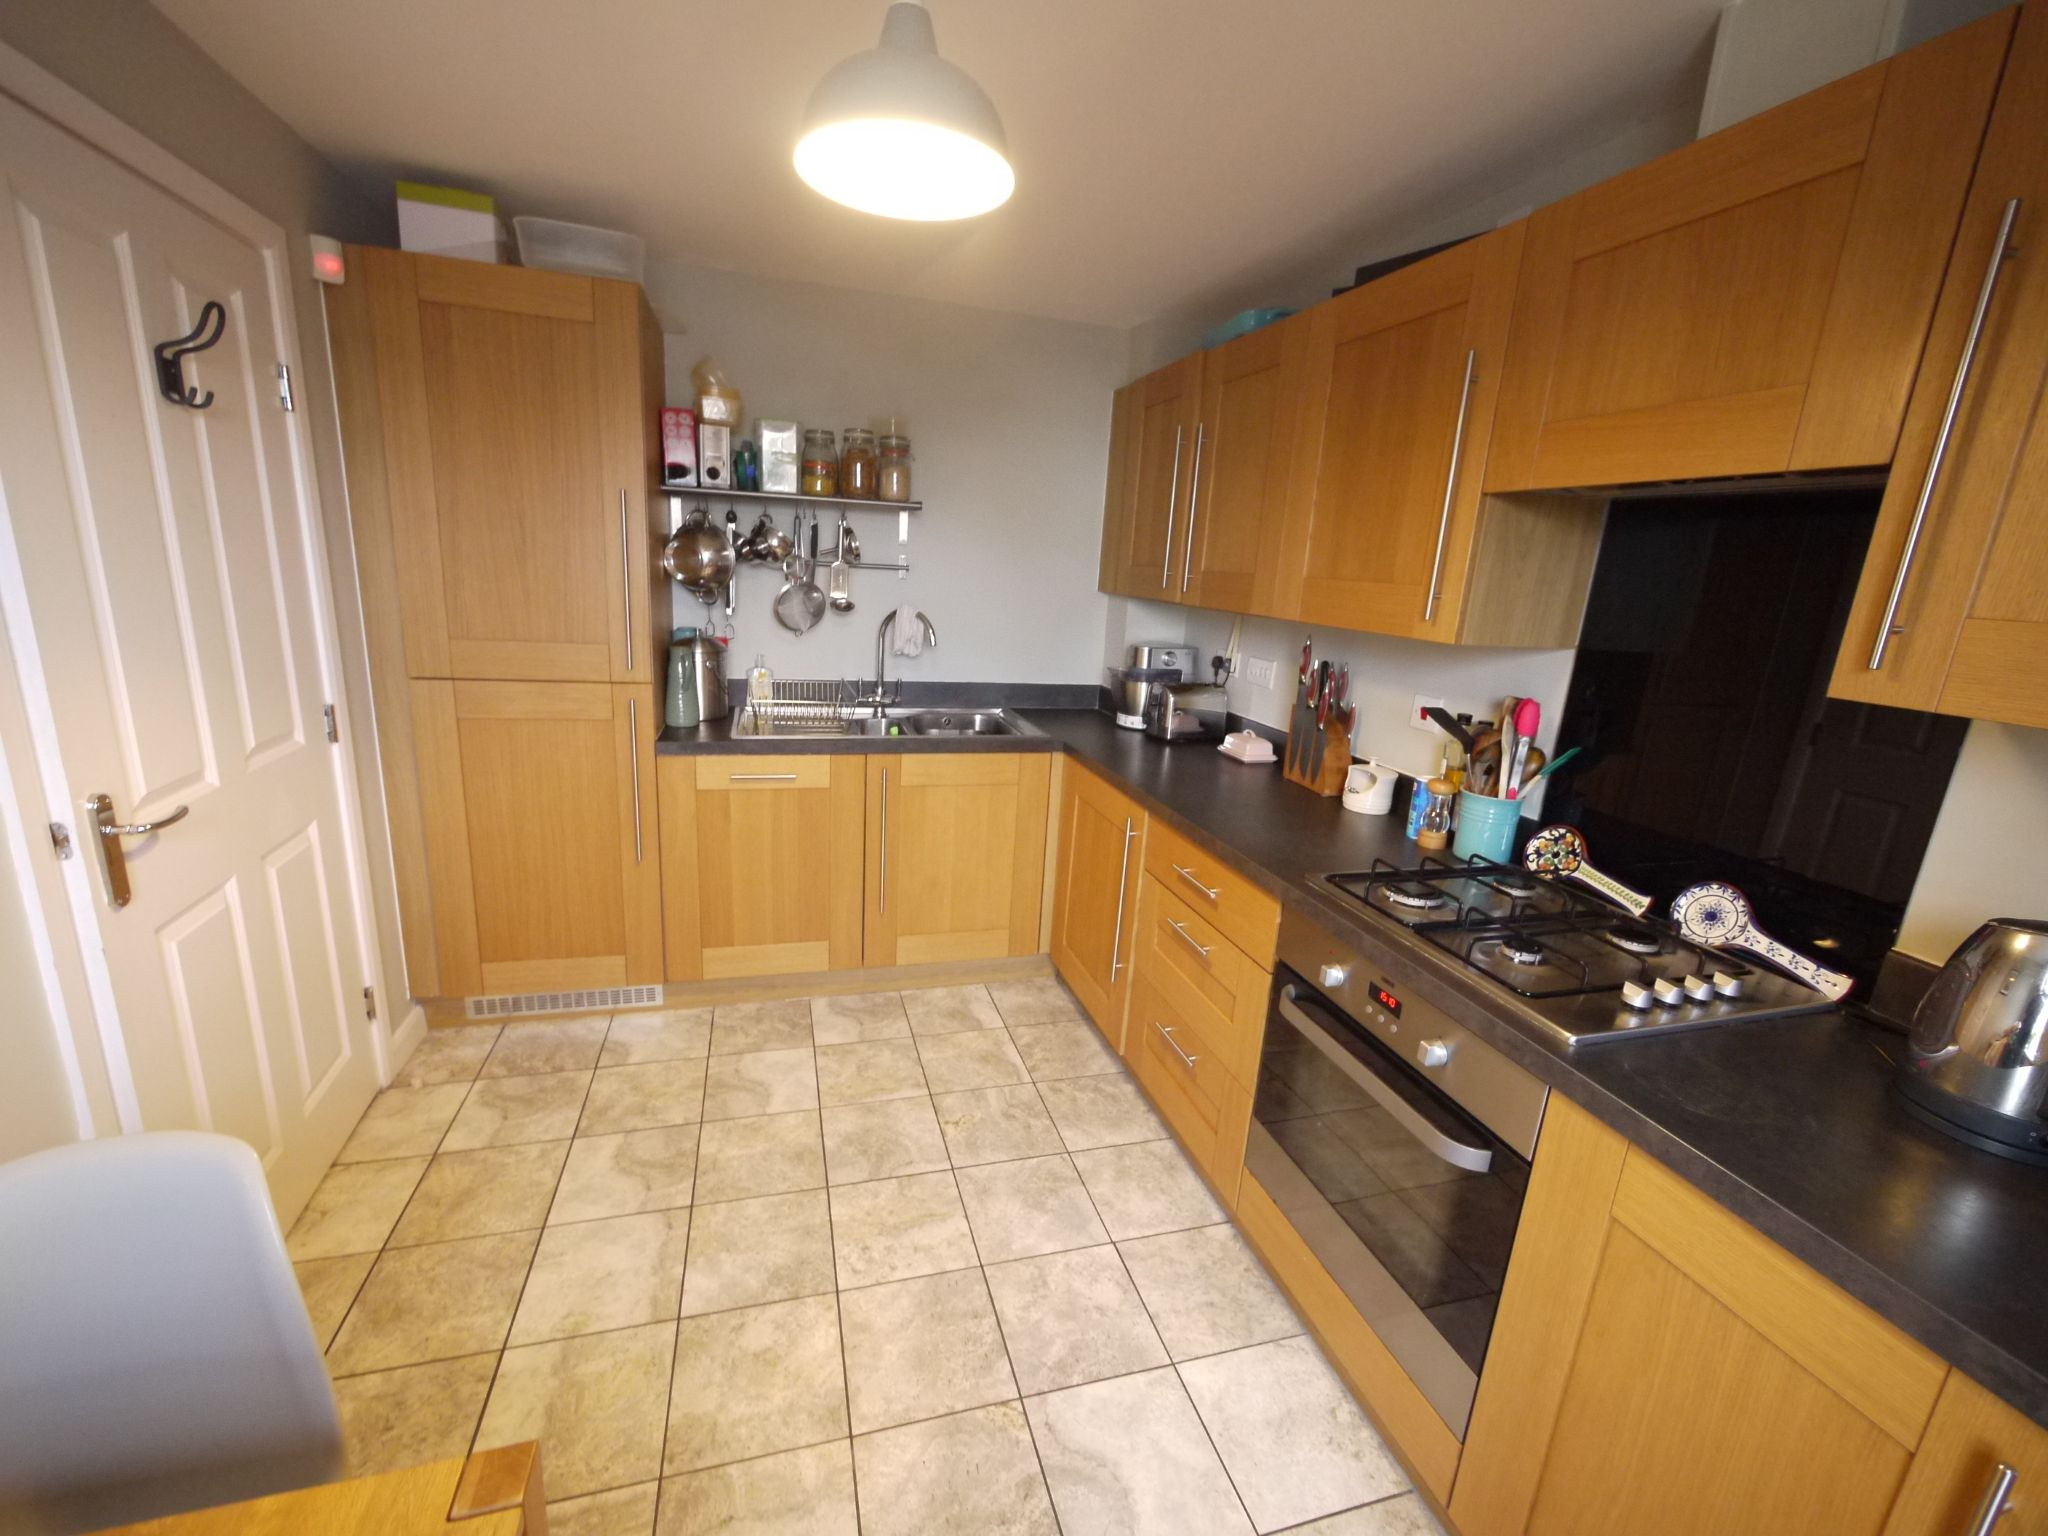 3 bedroom end terraced house SSTC in Cleckheaton - Dining Kitchen 2.